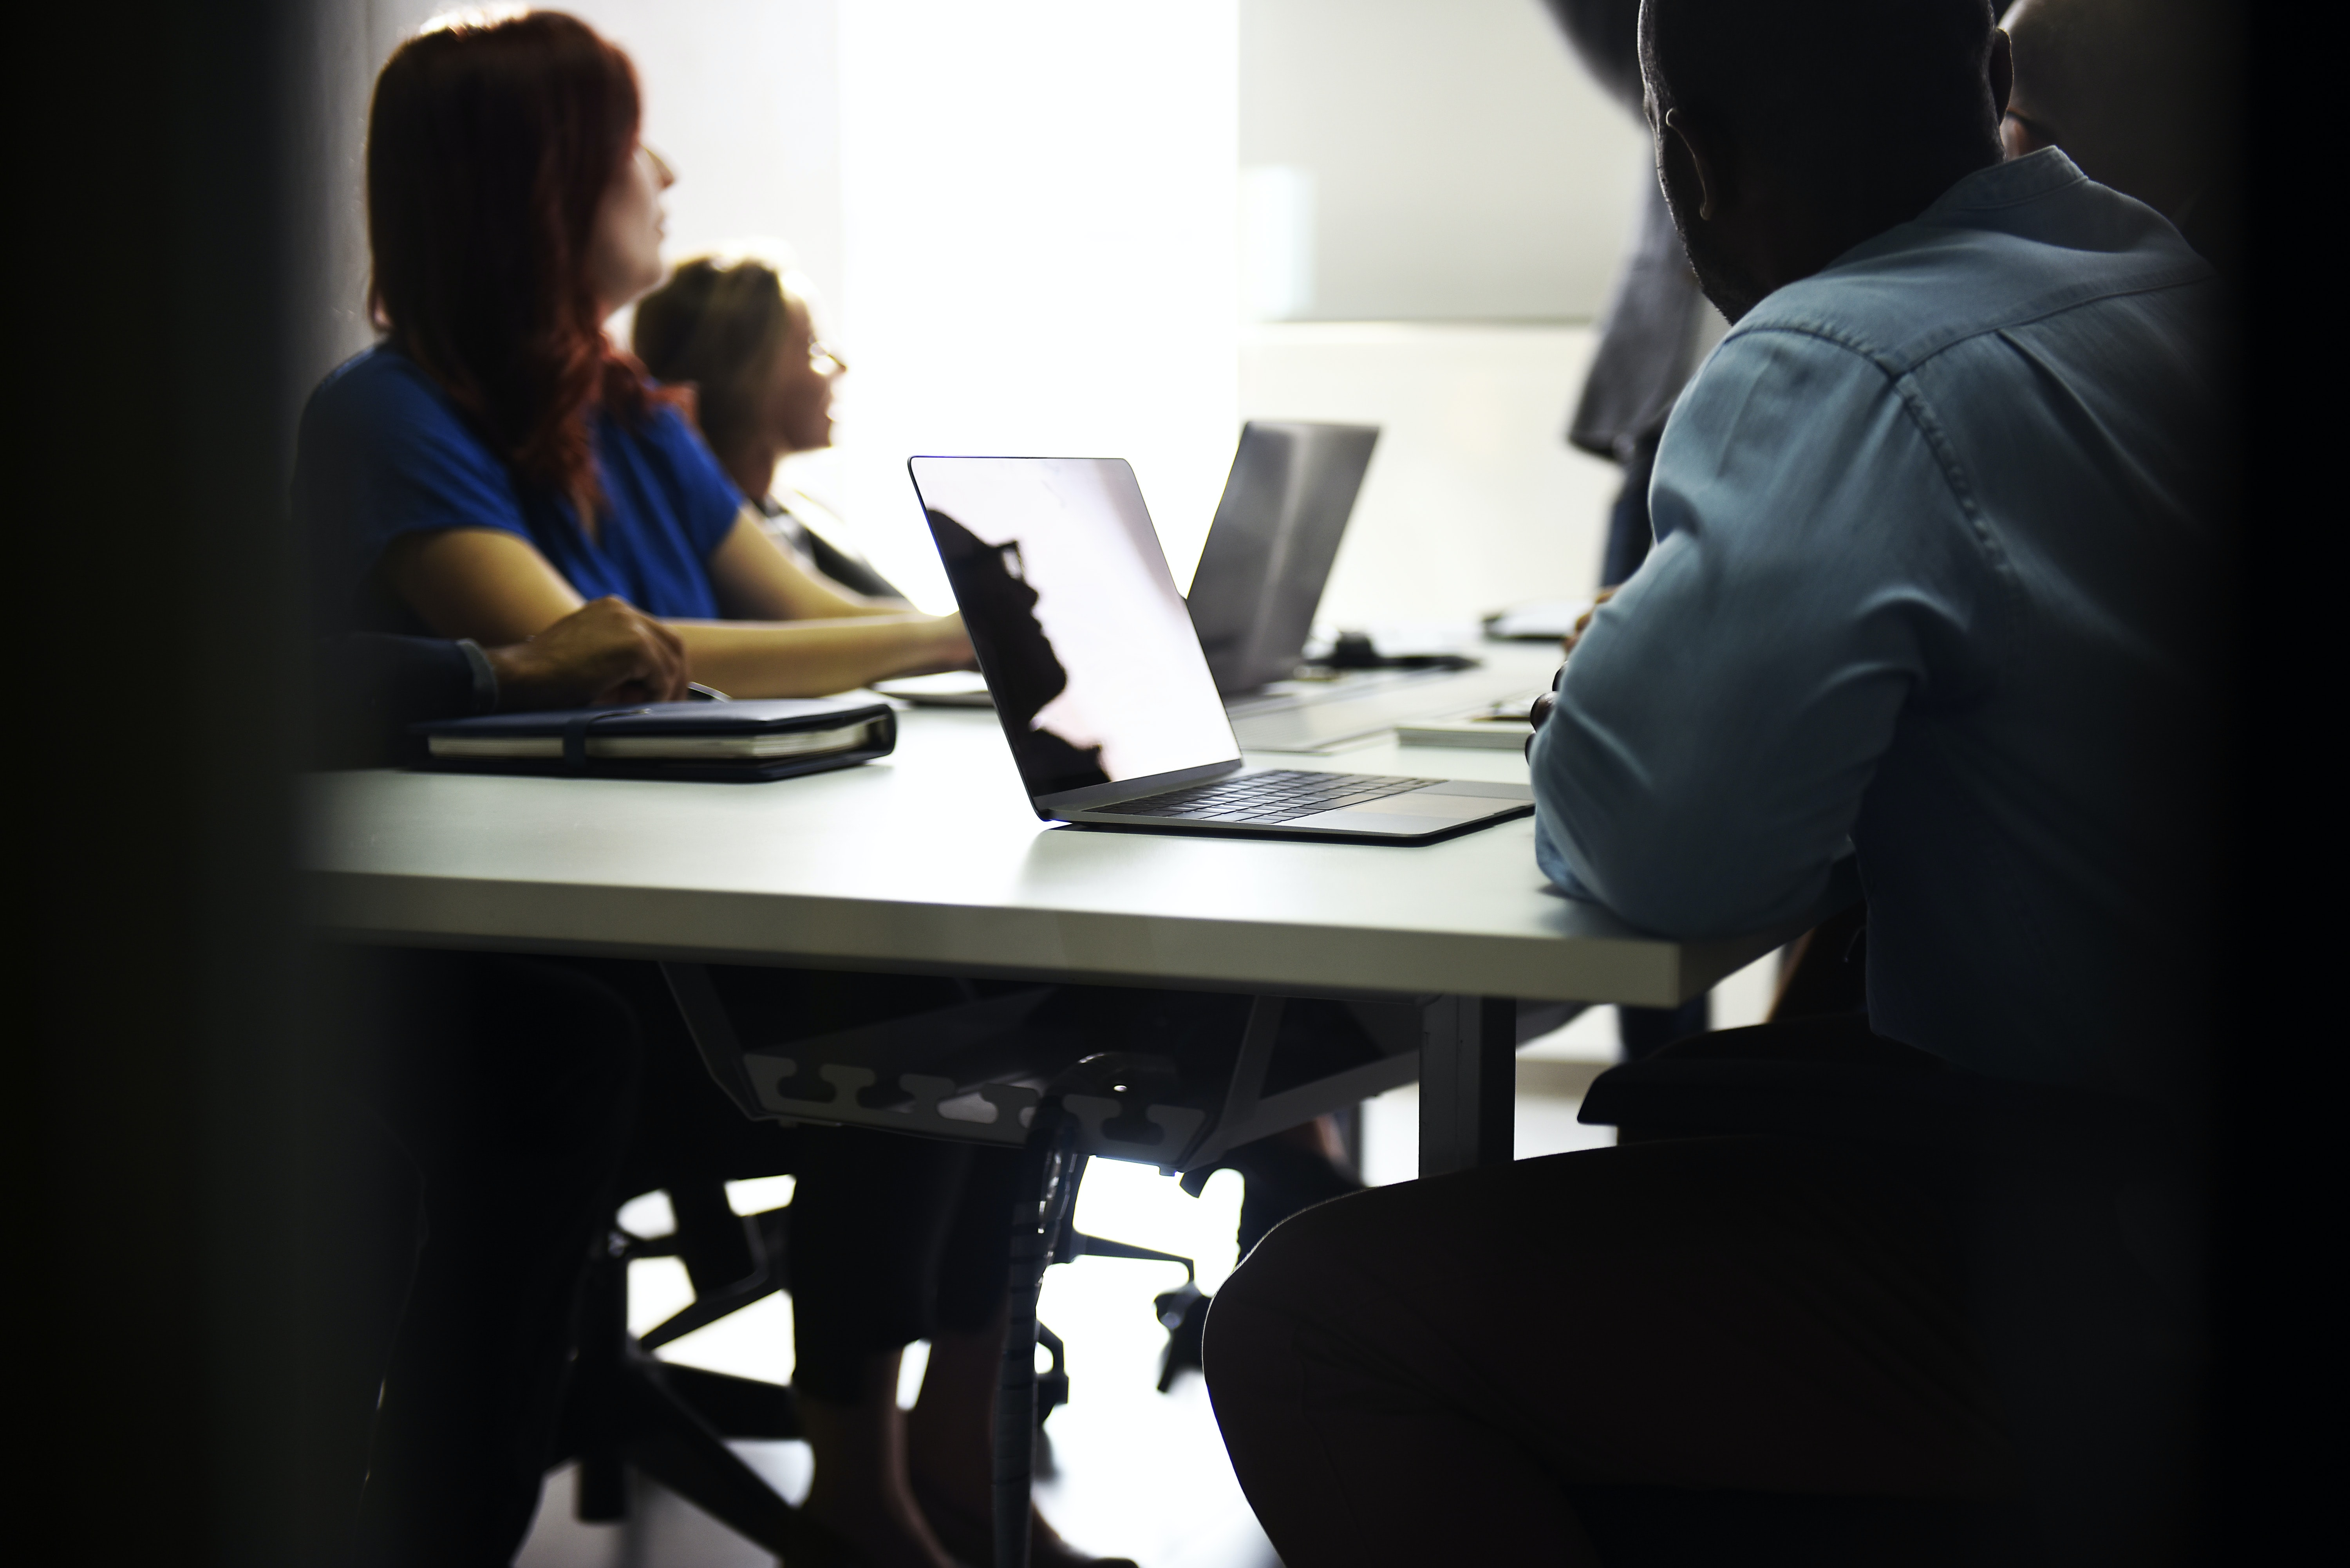 A group of office workers conducting a meeting.